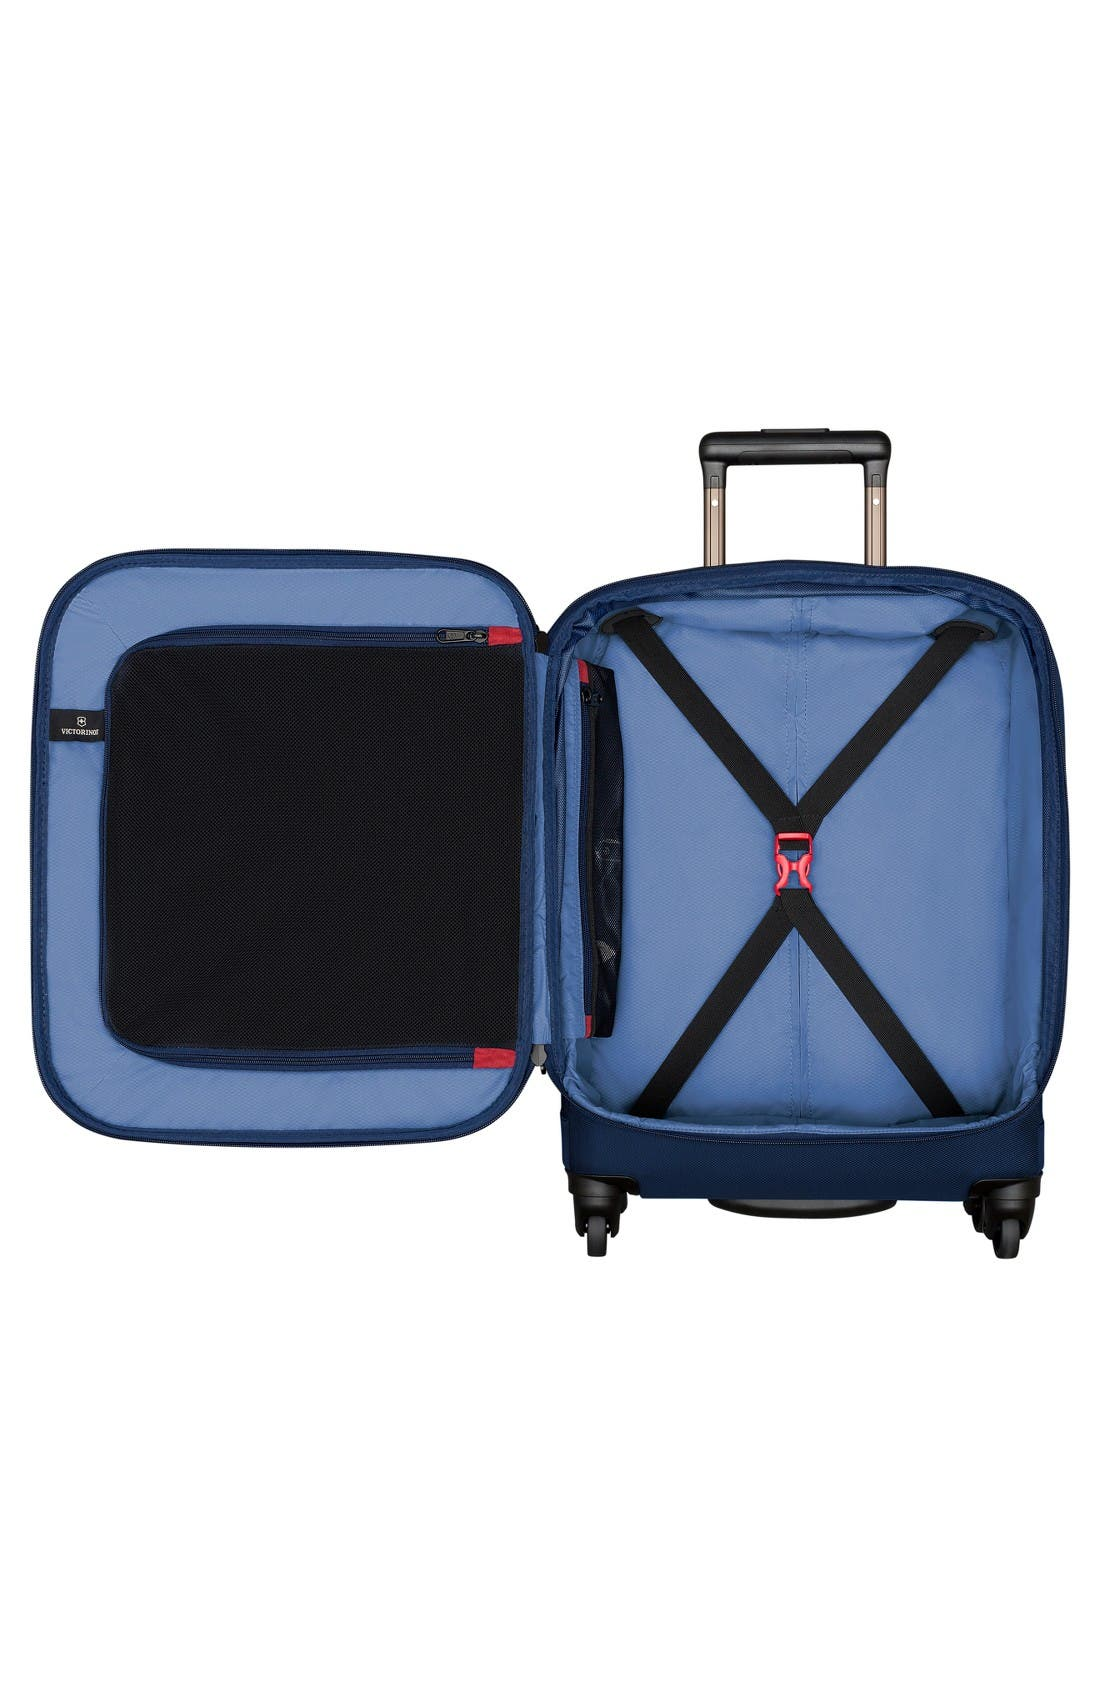 Avolve 3.0 Global 22-Inch Wheeled Carry-On,                             Alternate thumbnail 2, color,                             Blue